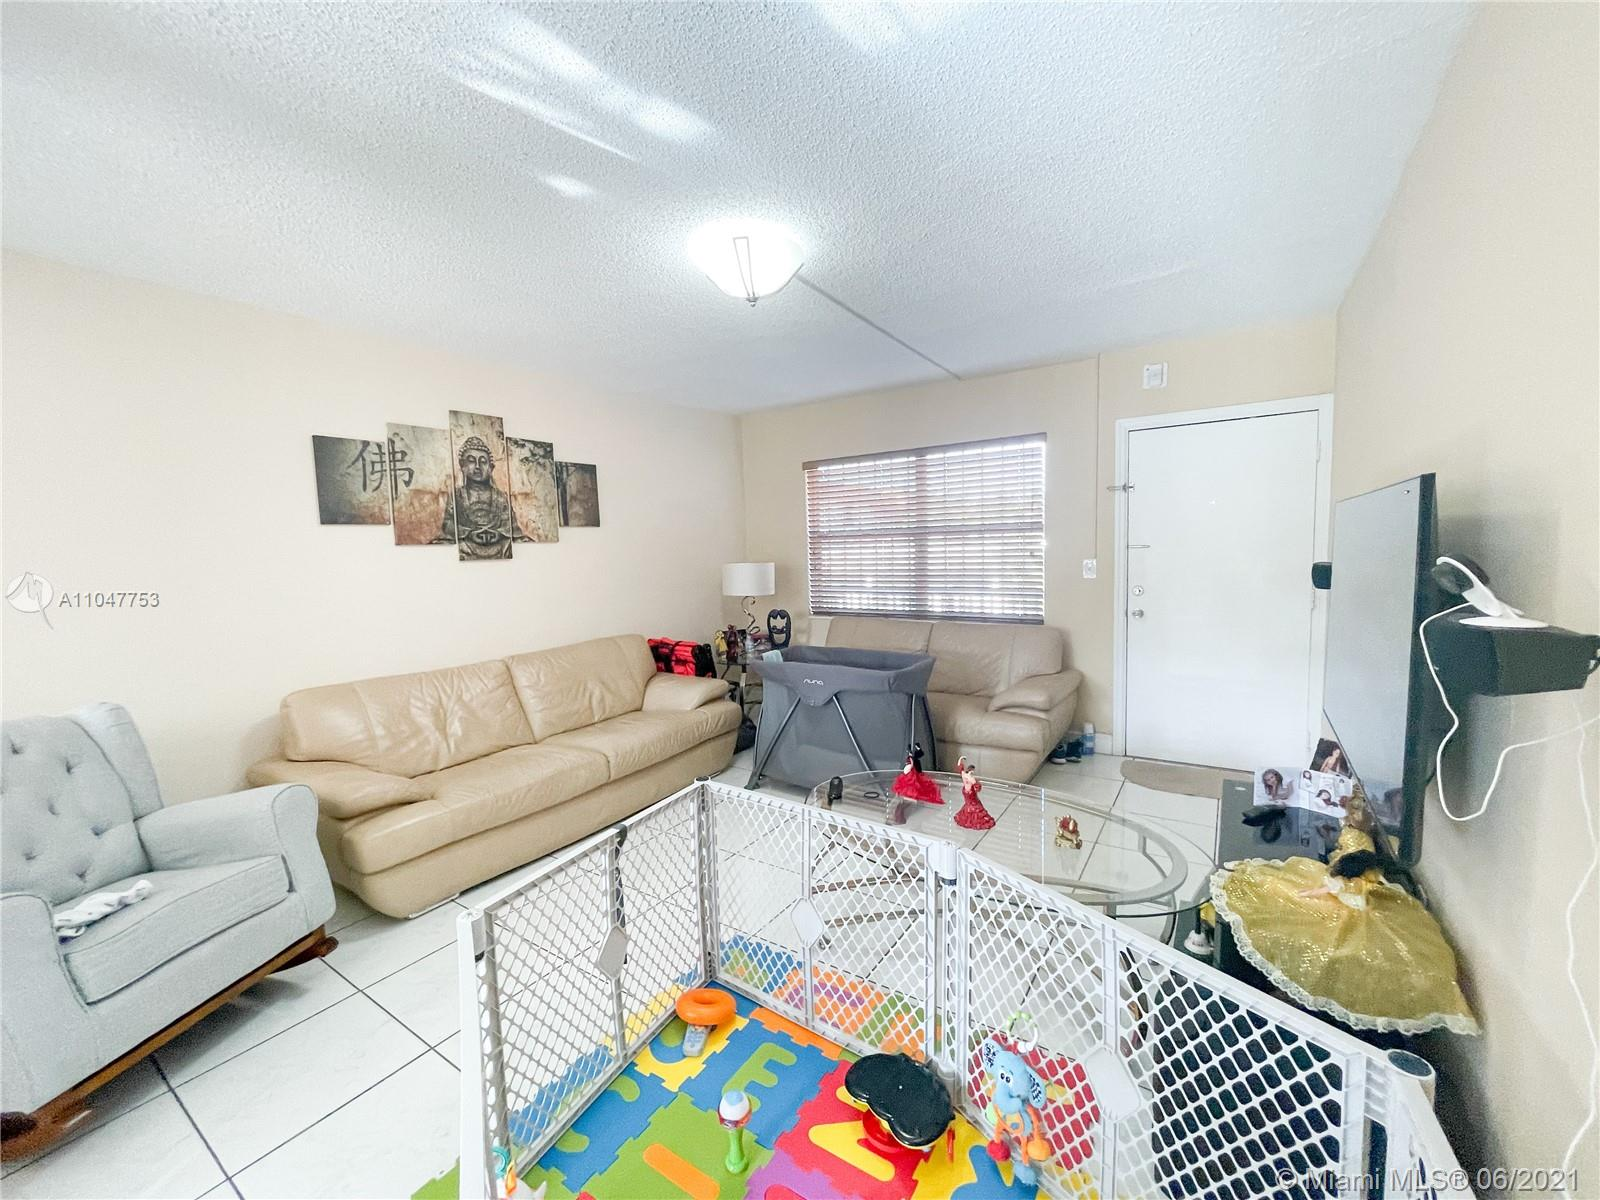 GREAT 2BED/2BATH APARTMENT IN THE HEART OF EAST KENDALL. WALKING DISTANCE TO DADELAND MALL AND THE METRO-RAIL.  BEAUTIFUL TILED FLOORS, WOOD CABINETS AND GRANITE COUNTER. COMMUNITY OFFERS POOL AND THE UNIT HAS A NICE VIEW OF THE POOL AREA. EASY ACCESS TO HIGHWAYS (826, US1, KENDALL DRIVE). Listing does not include: refrigerator, microwave, stove**RENTED IN $1,450 MONTHLY UNTIL SEPTEMBER 2021** special assessment $191.43 monthly*